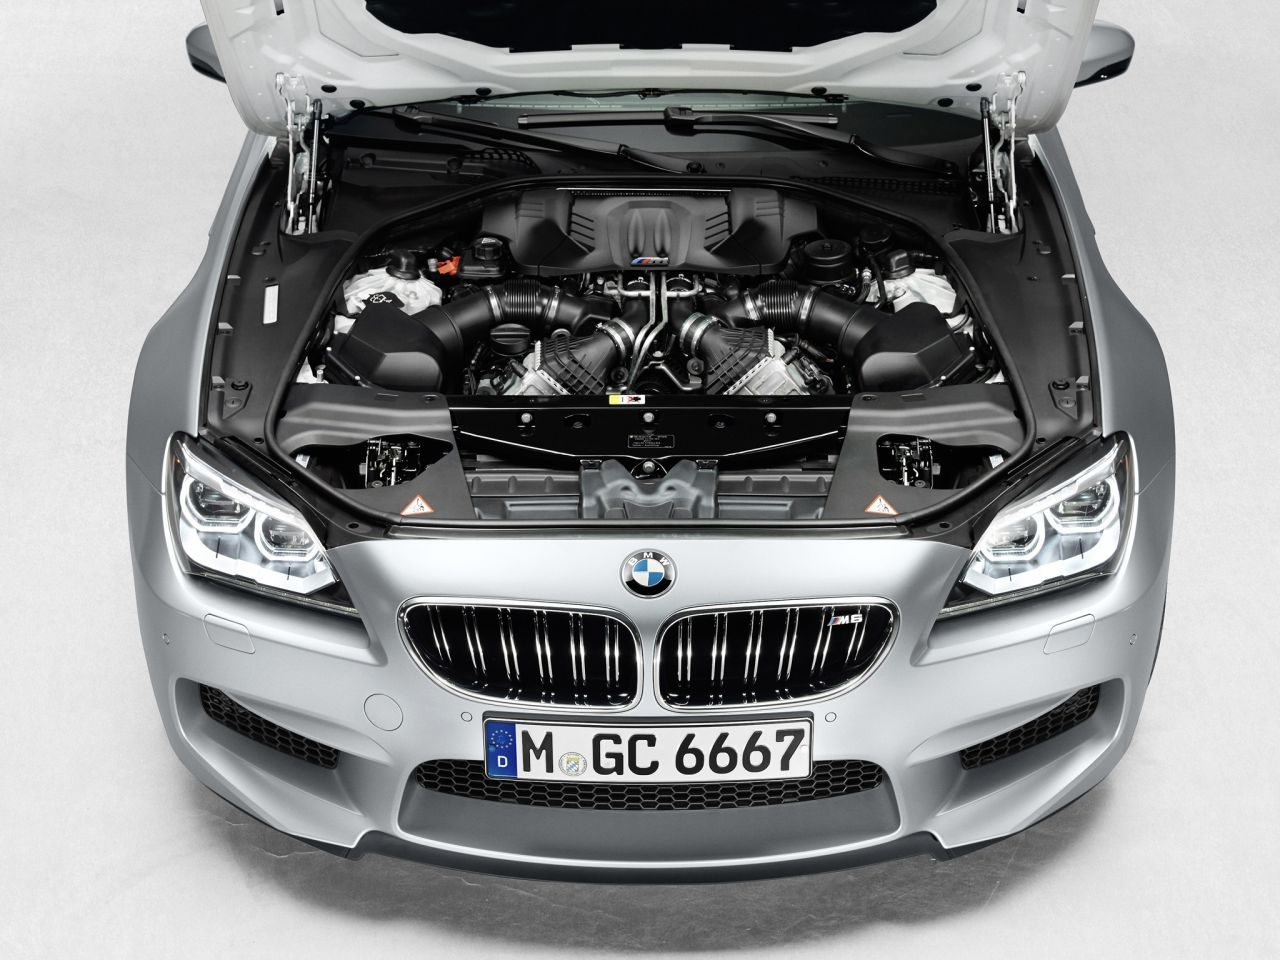 BMW-M6-Gran-Coupe-01.jpg